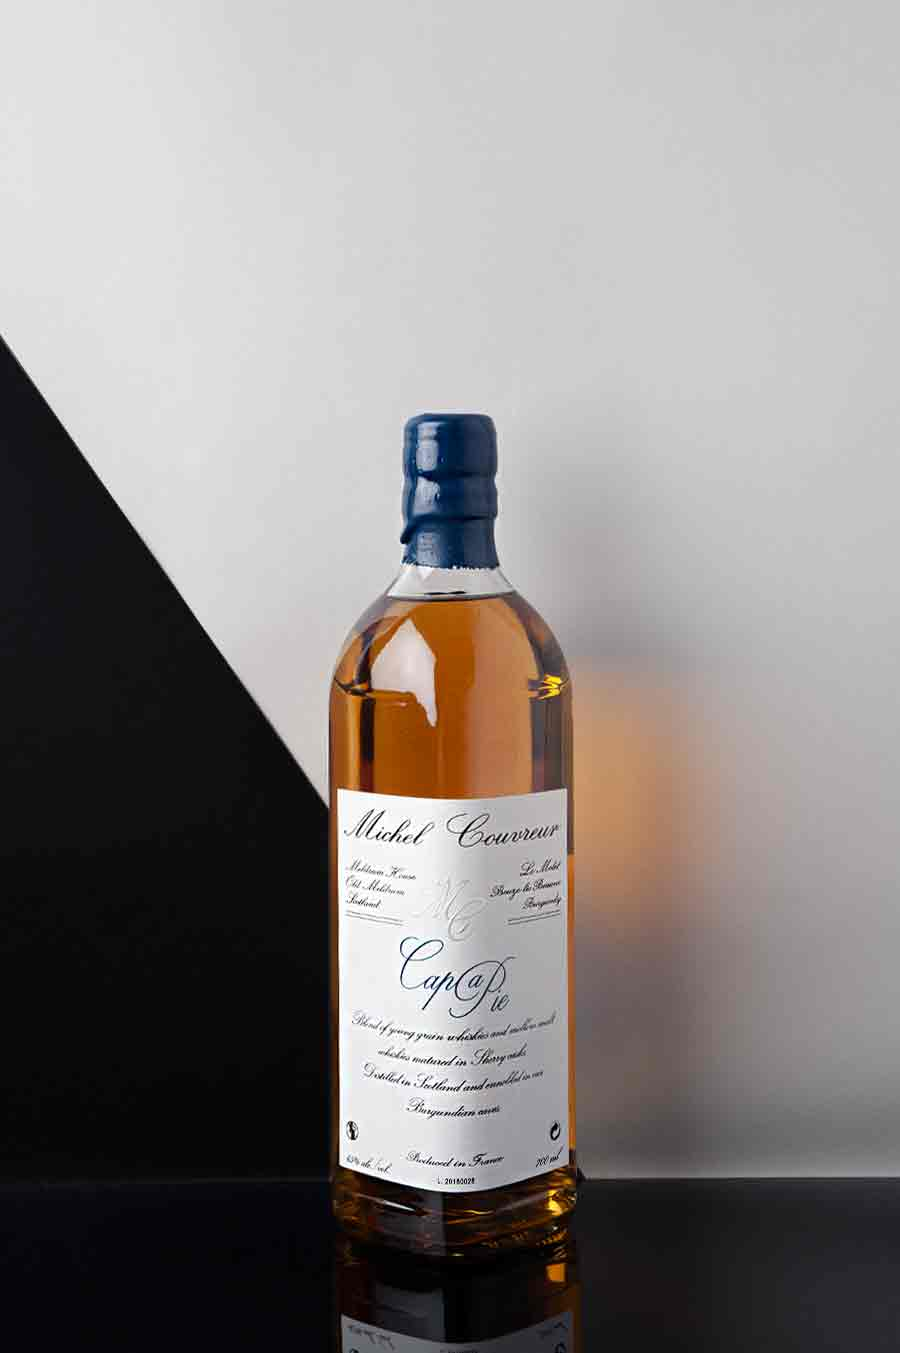 Michel Couvreur Cap a Pie Blended Whisky